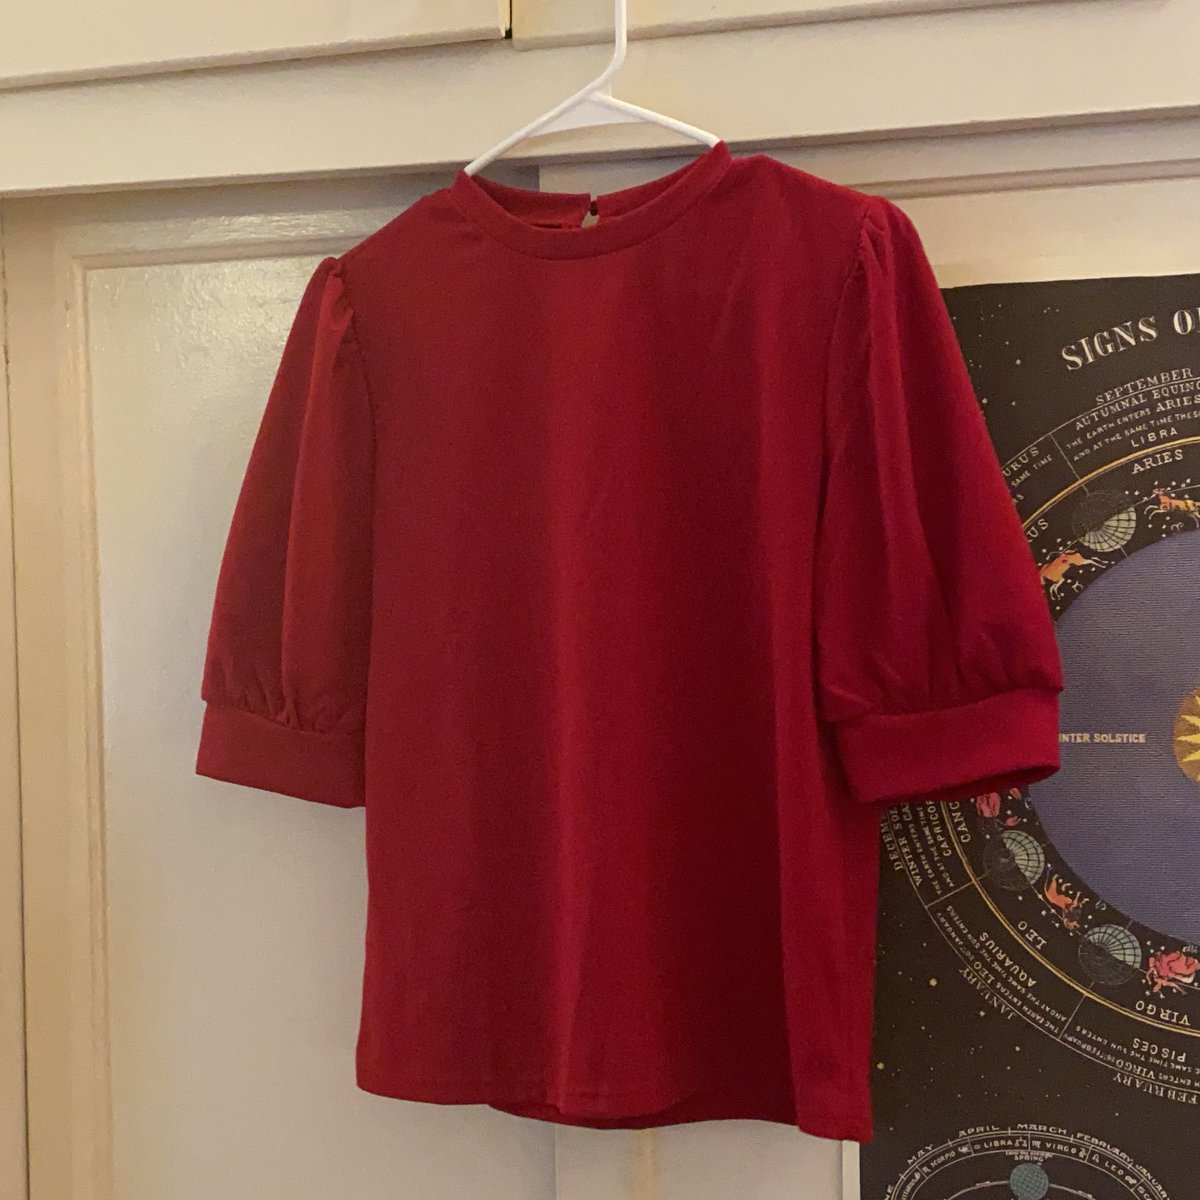 But also red blouse arrived today 😛